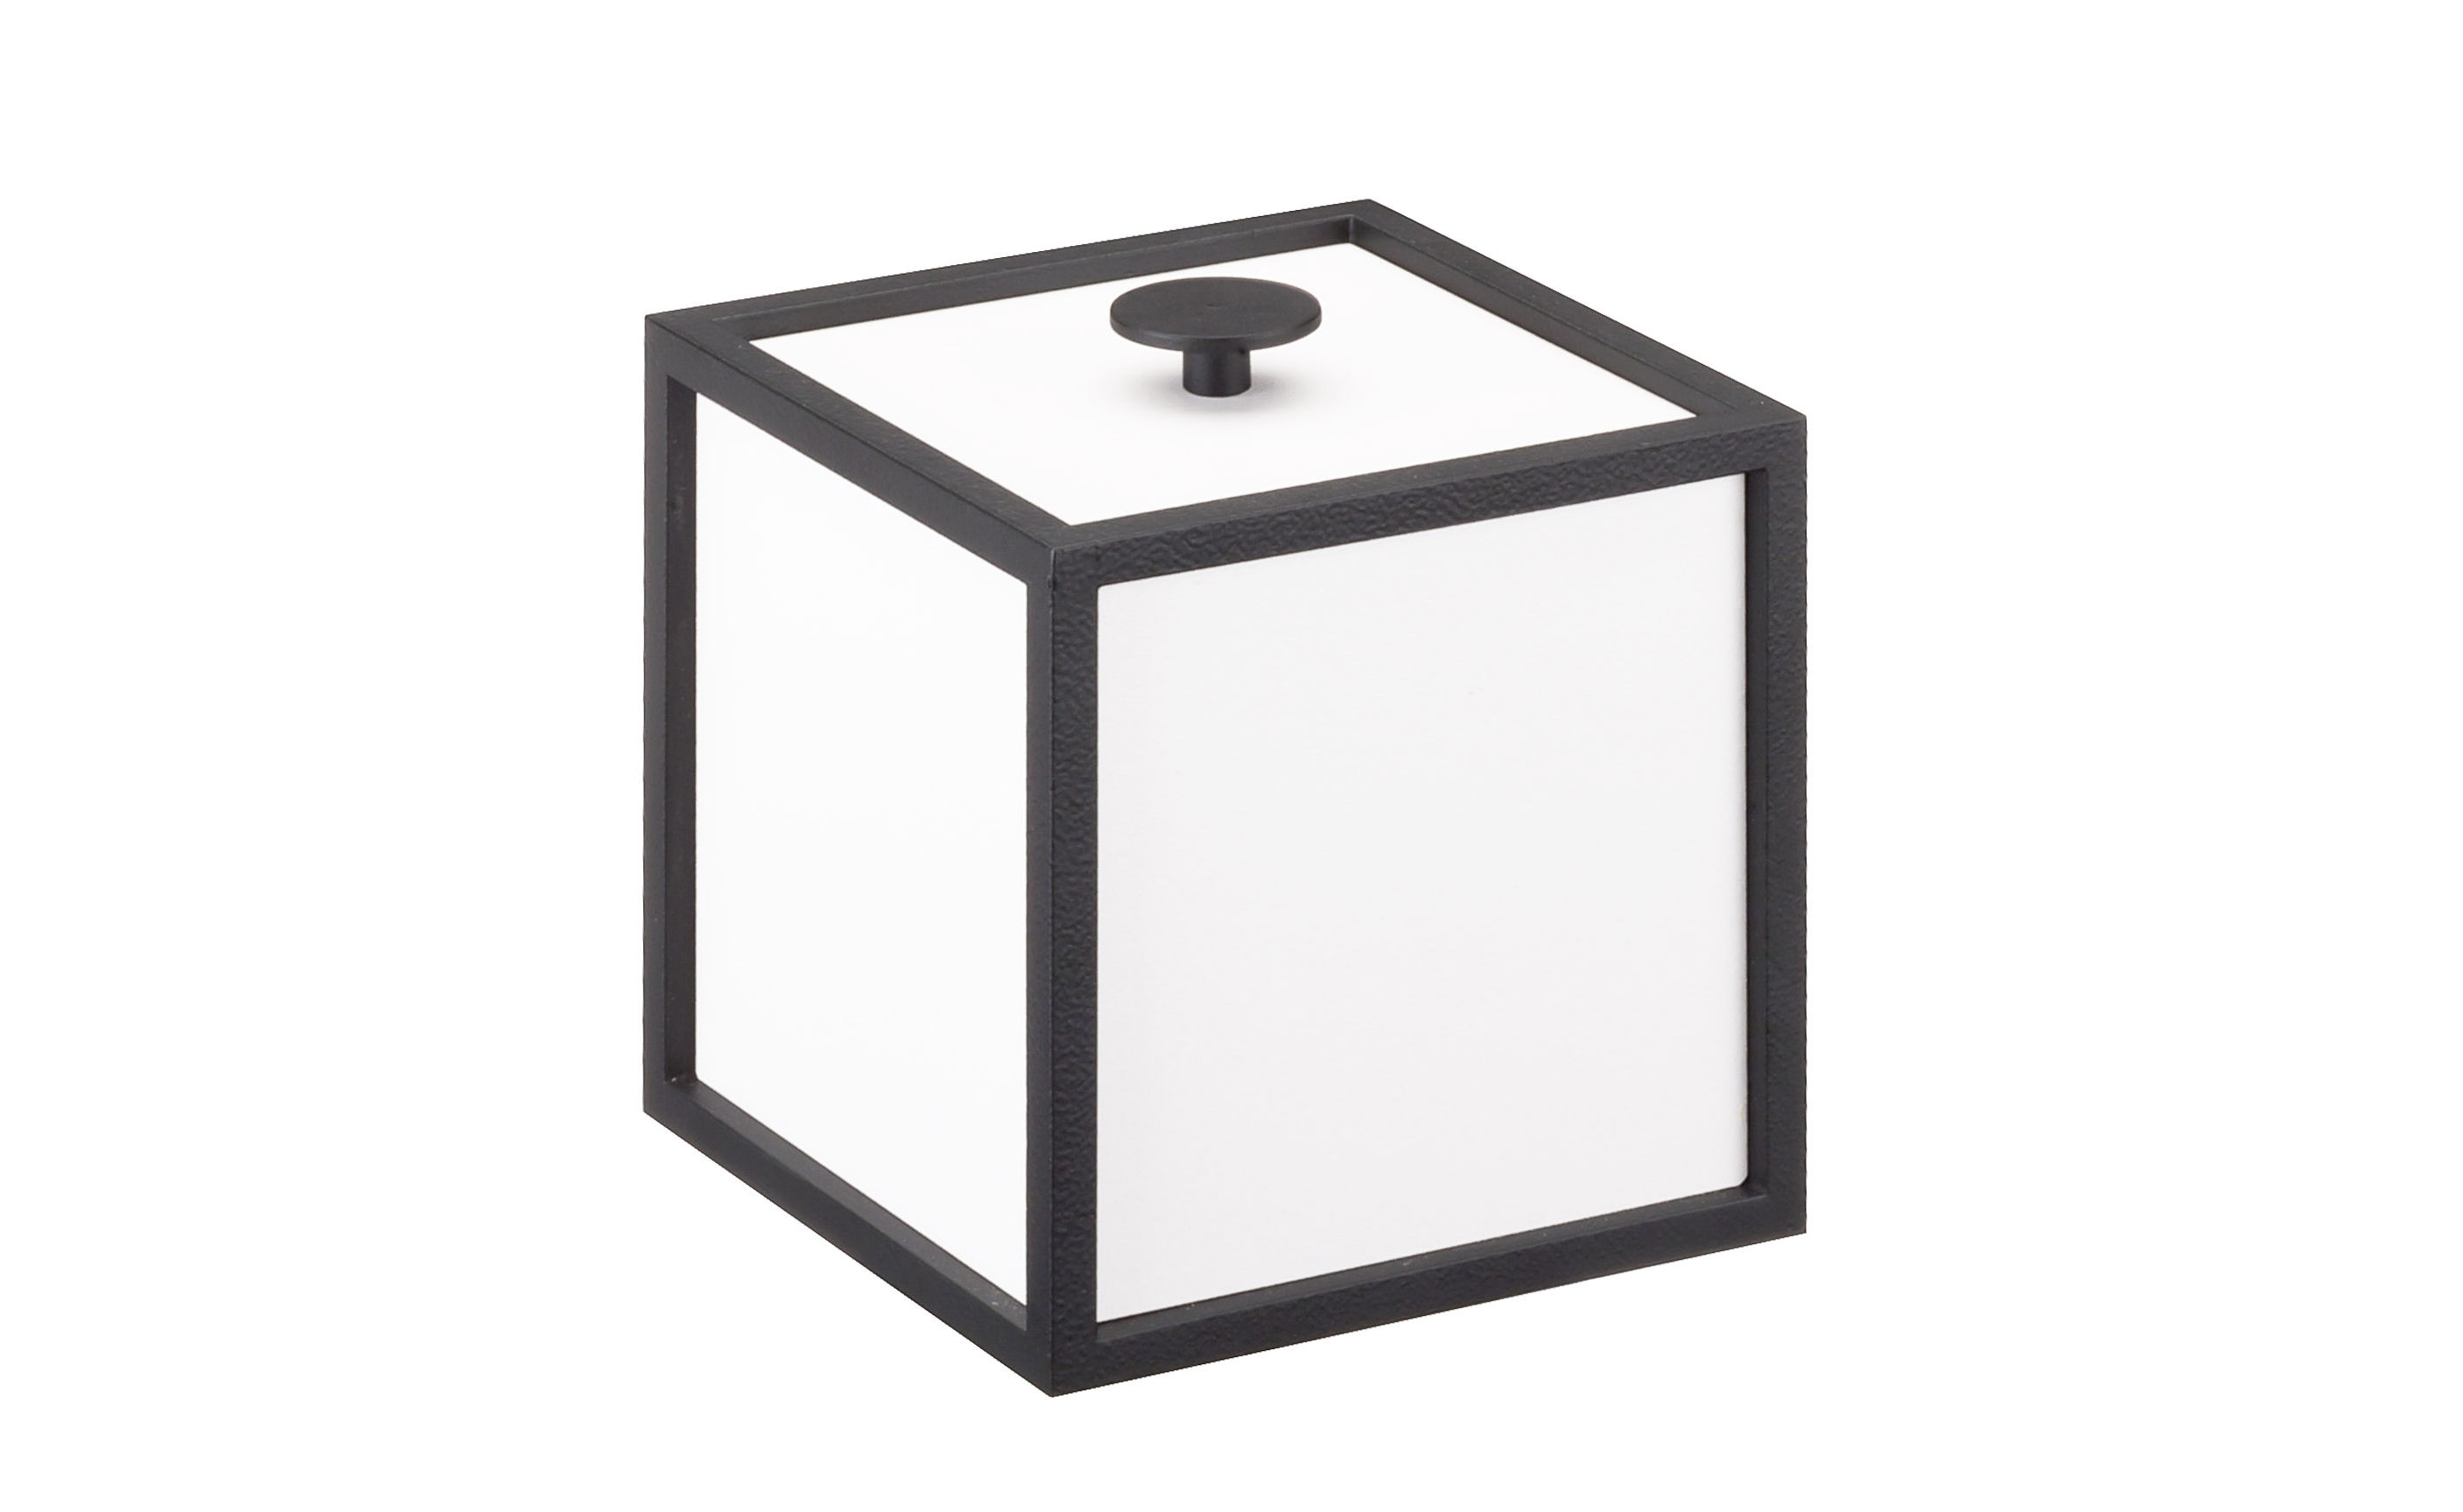 Decoration - Decorative Boxes - Frame Box by by Lassen - 10 cm / White & black - Lacquered MDF, Lacquered steel